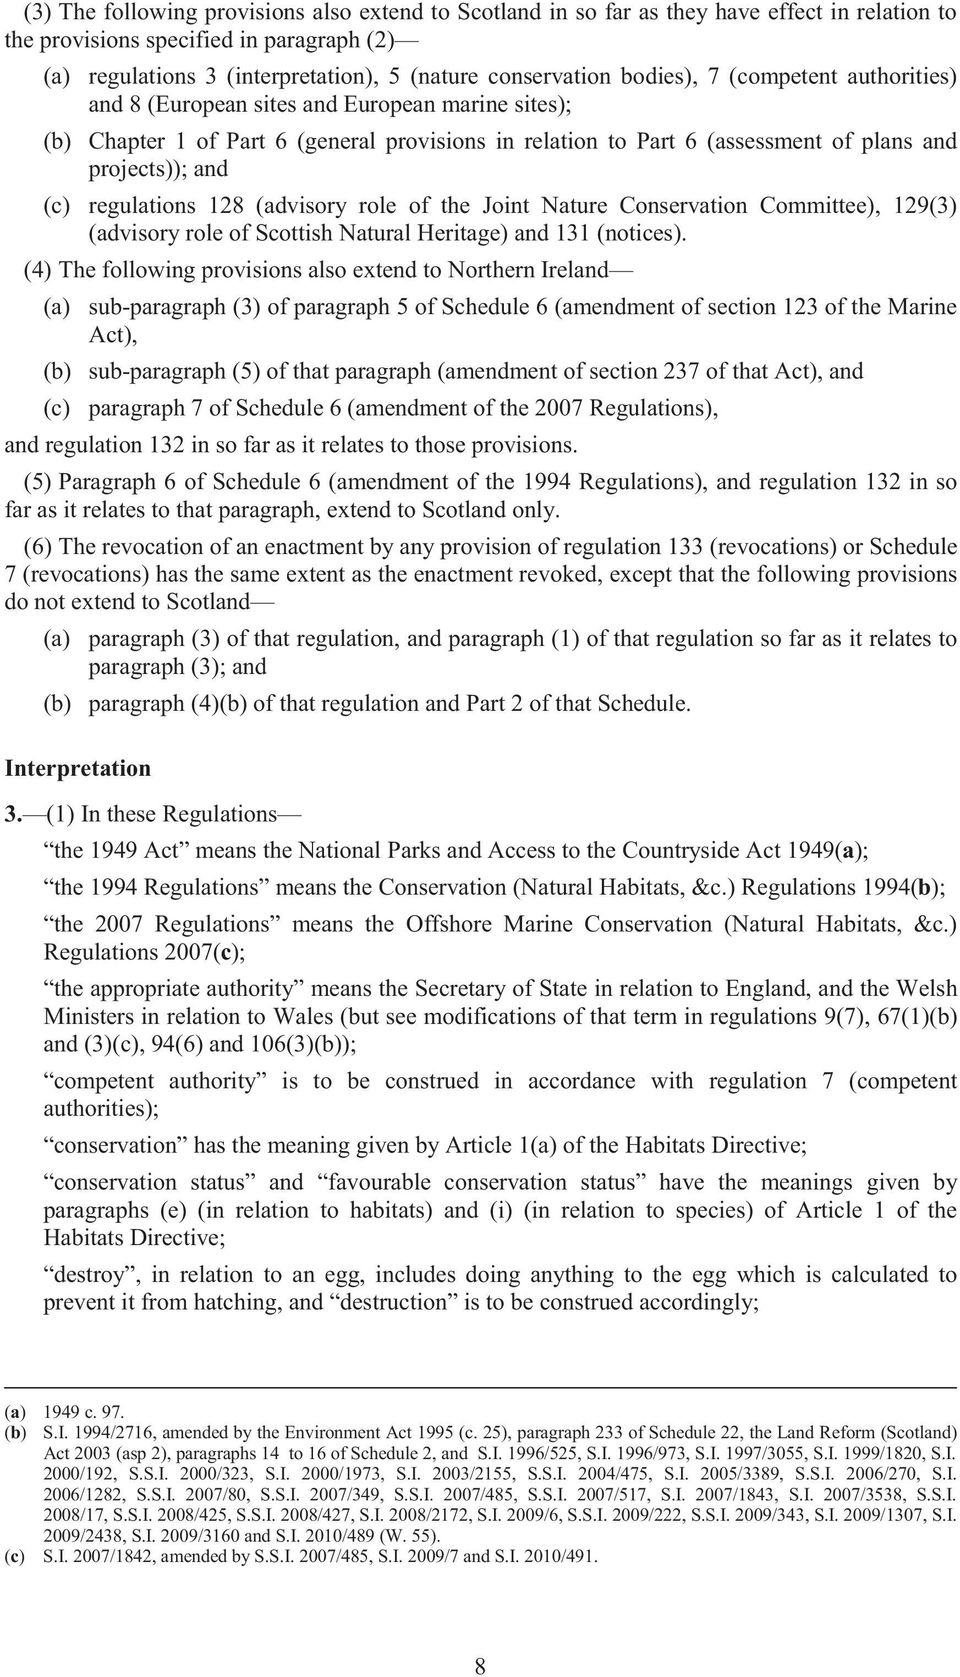 regulations 128 (advisory role of the Joint Nature Conservation Committee), 129(3) (advisory role of Scottish Natural Heritage) and 131 (notices).